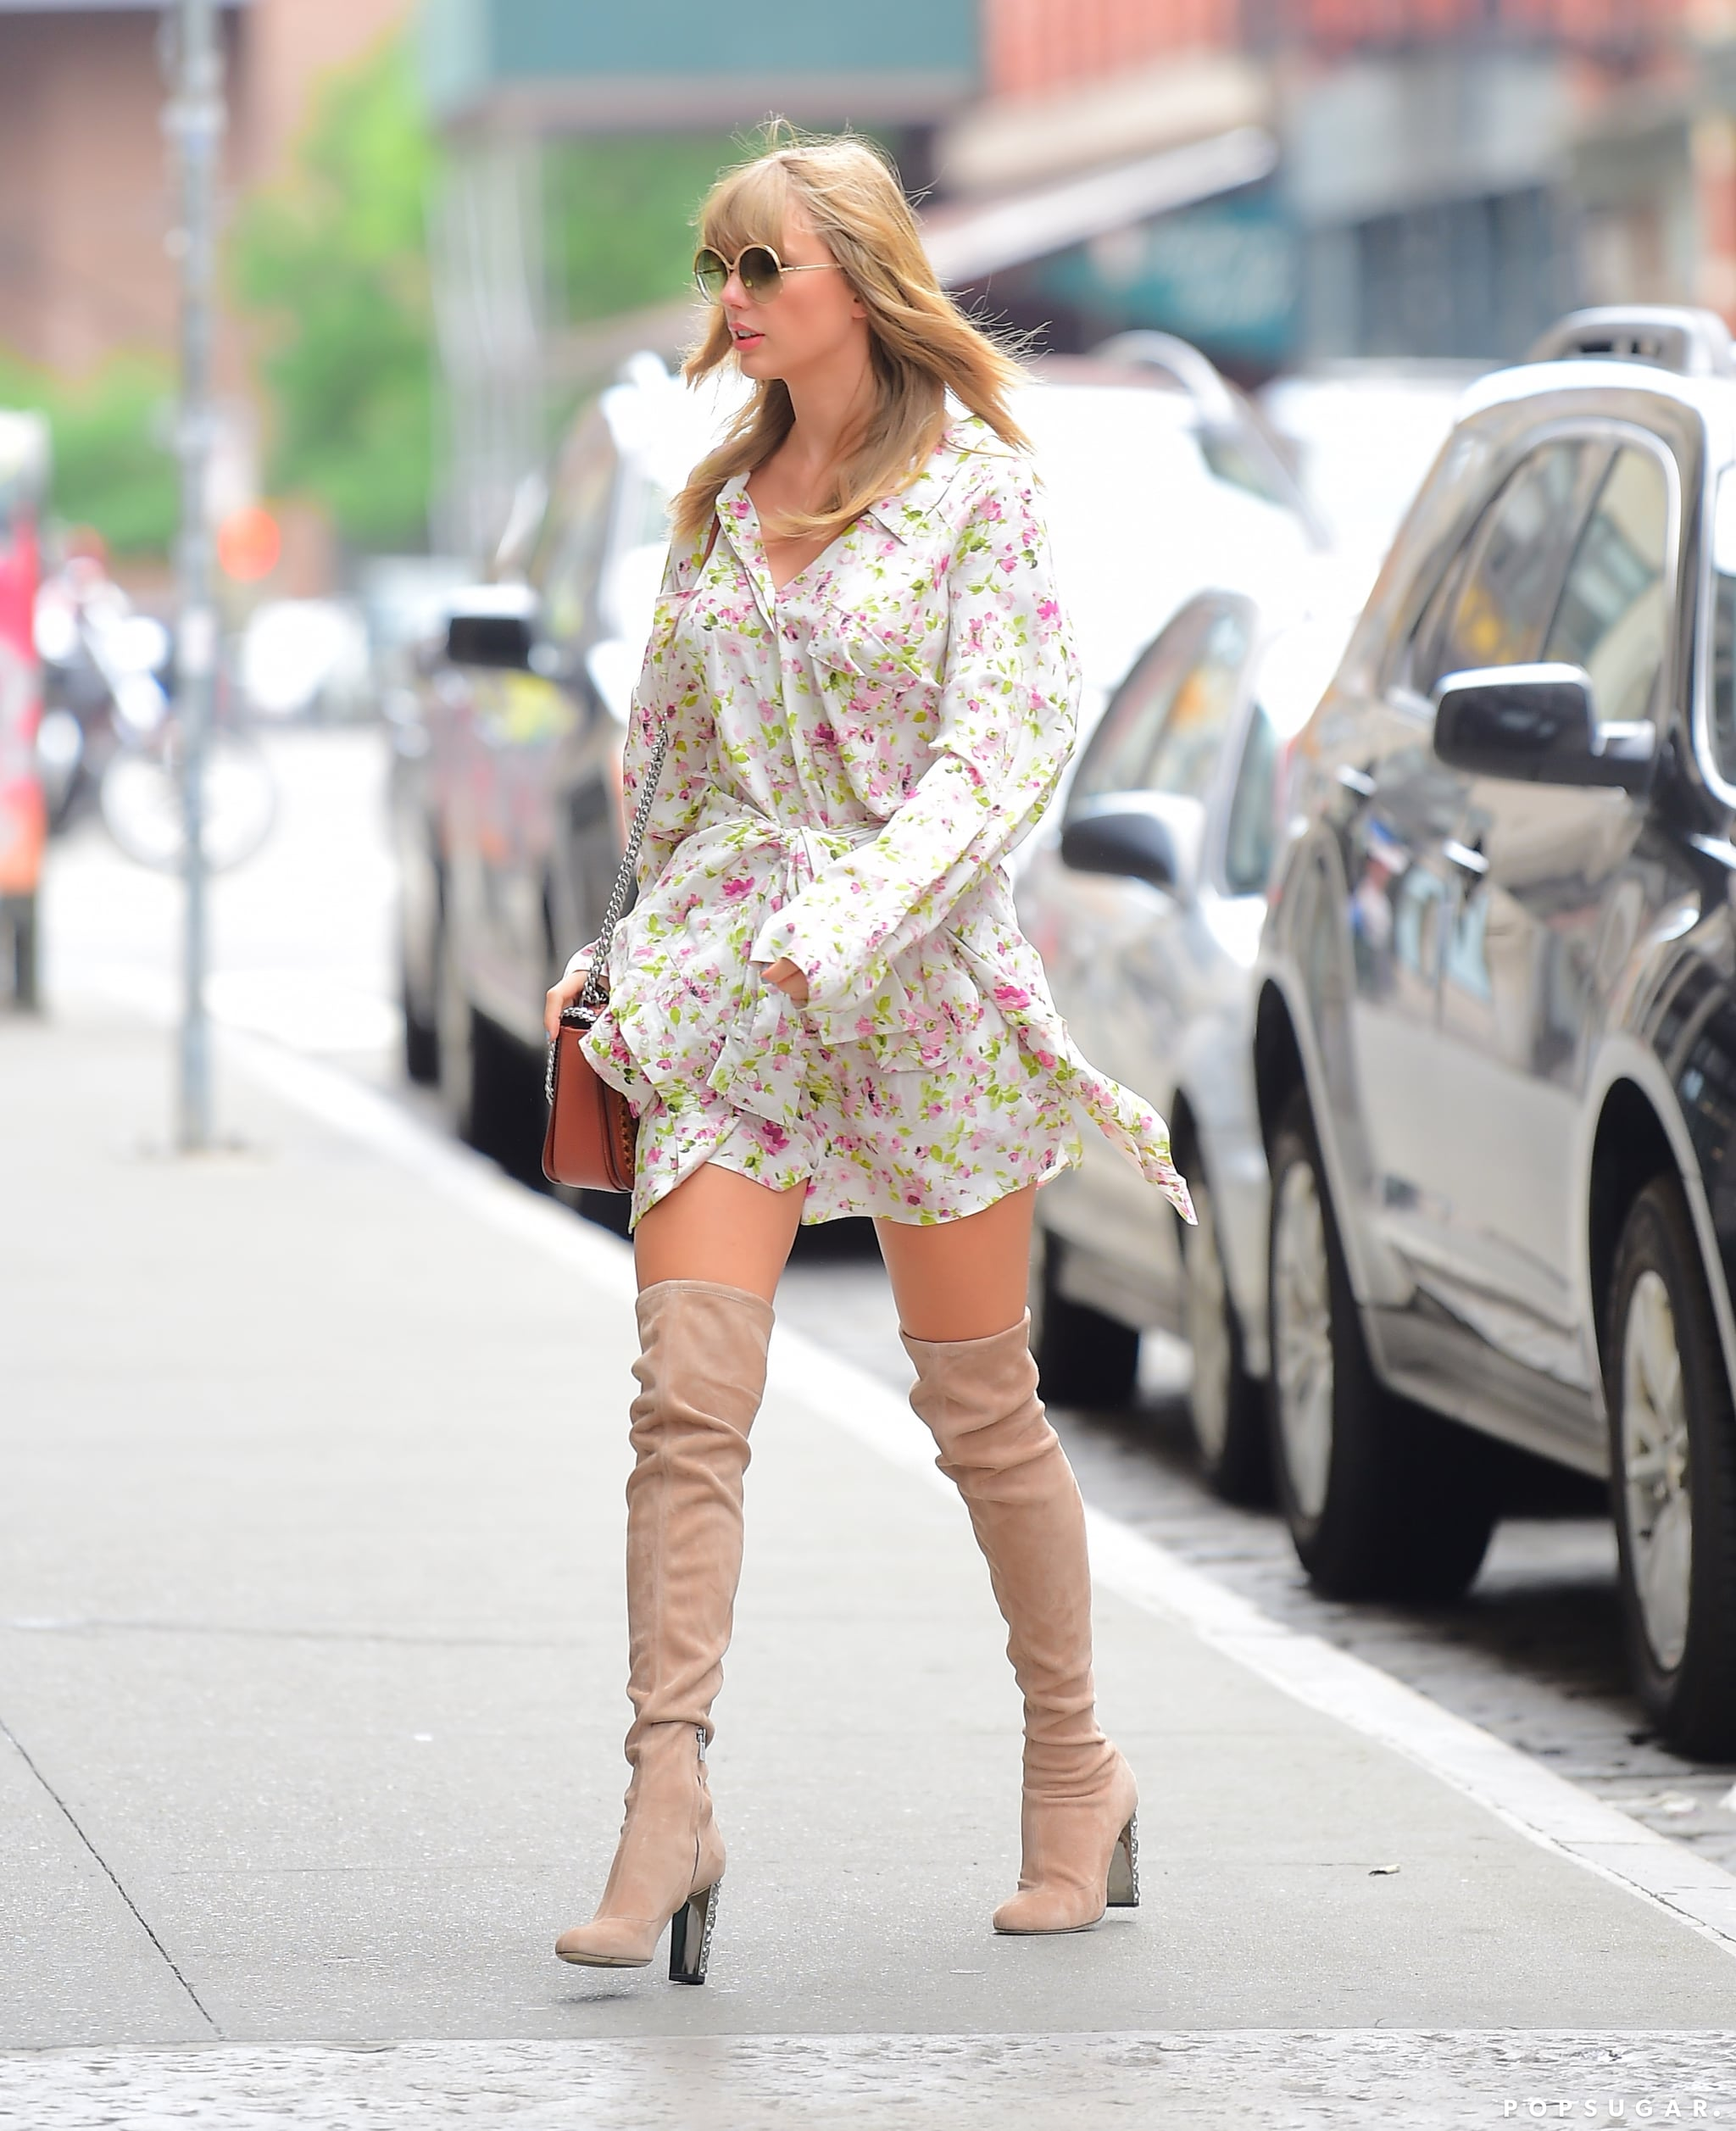 dresses that go with thigh high boots